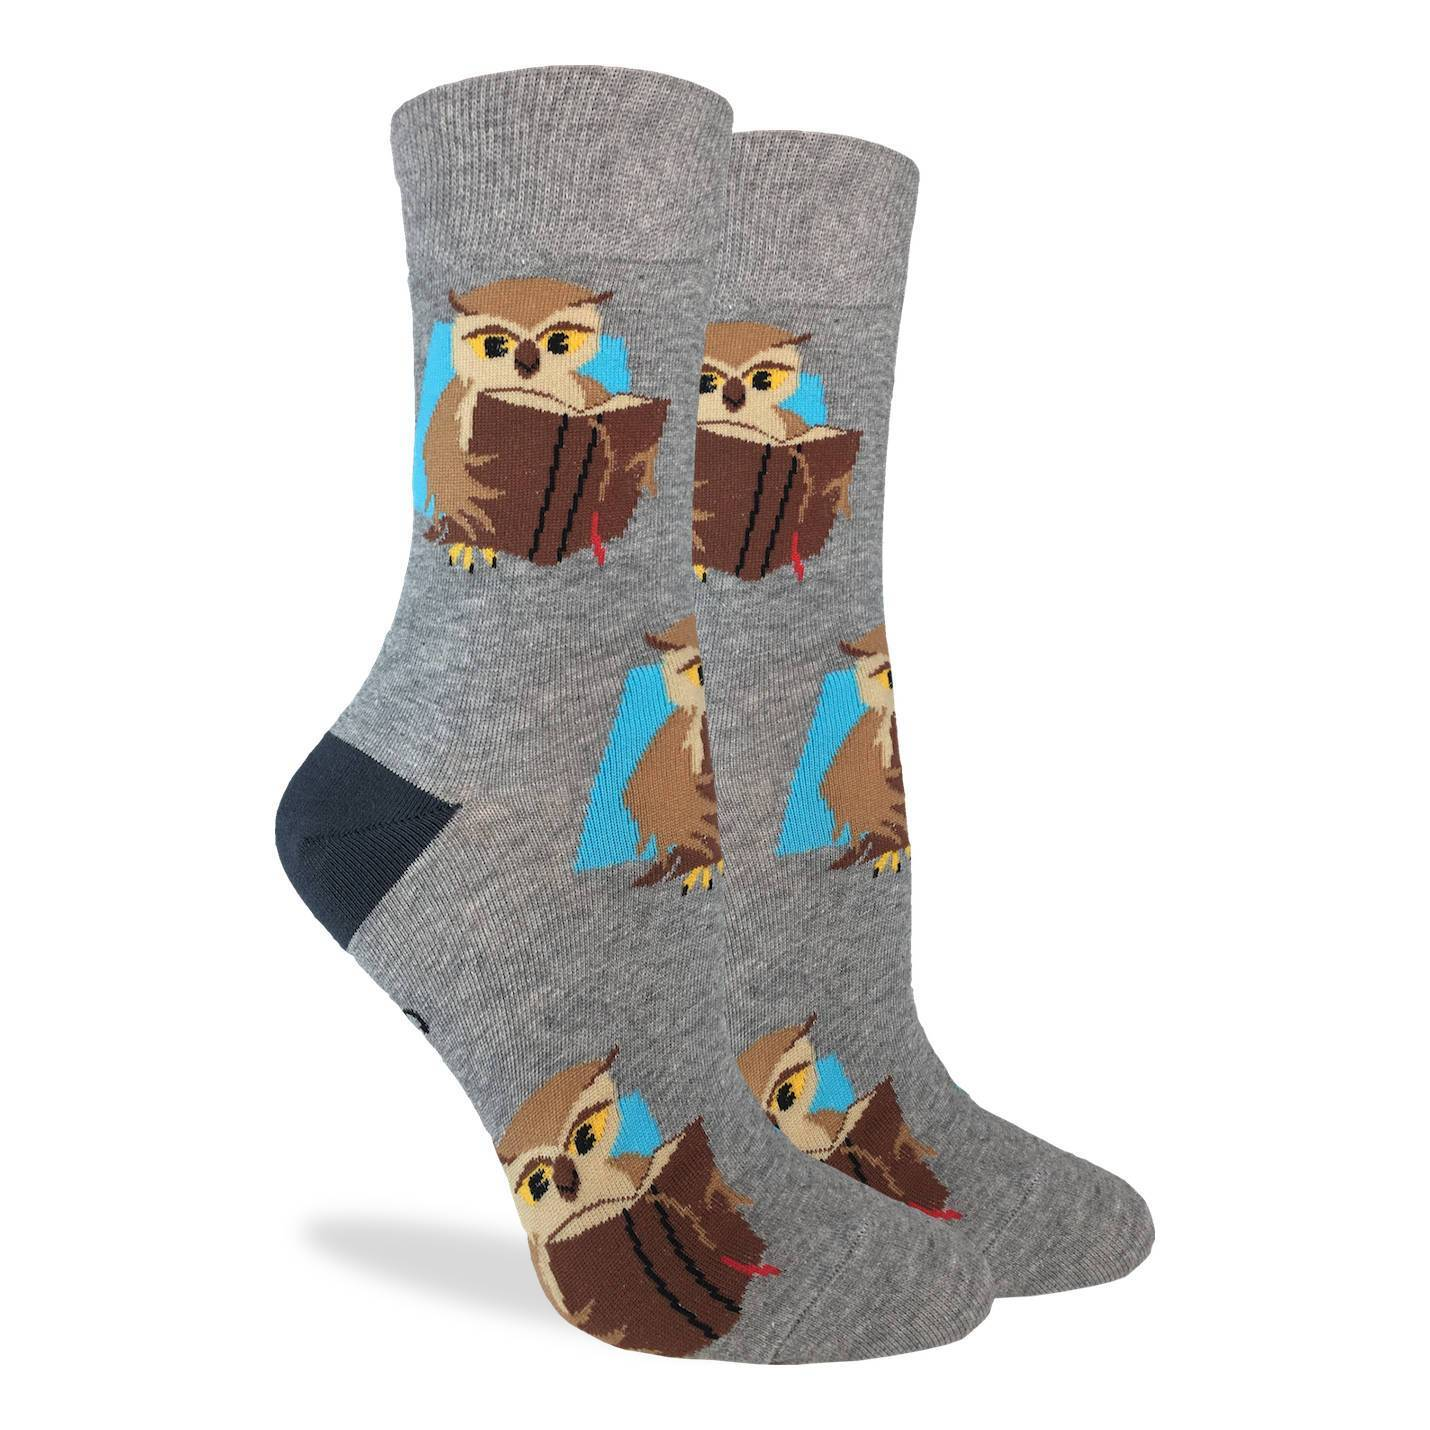 Women's Book Owl Socks - Good Luck Sock